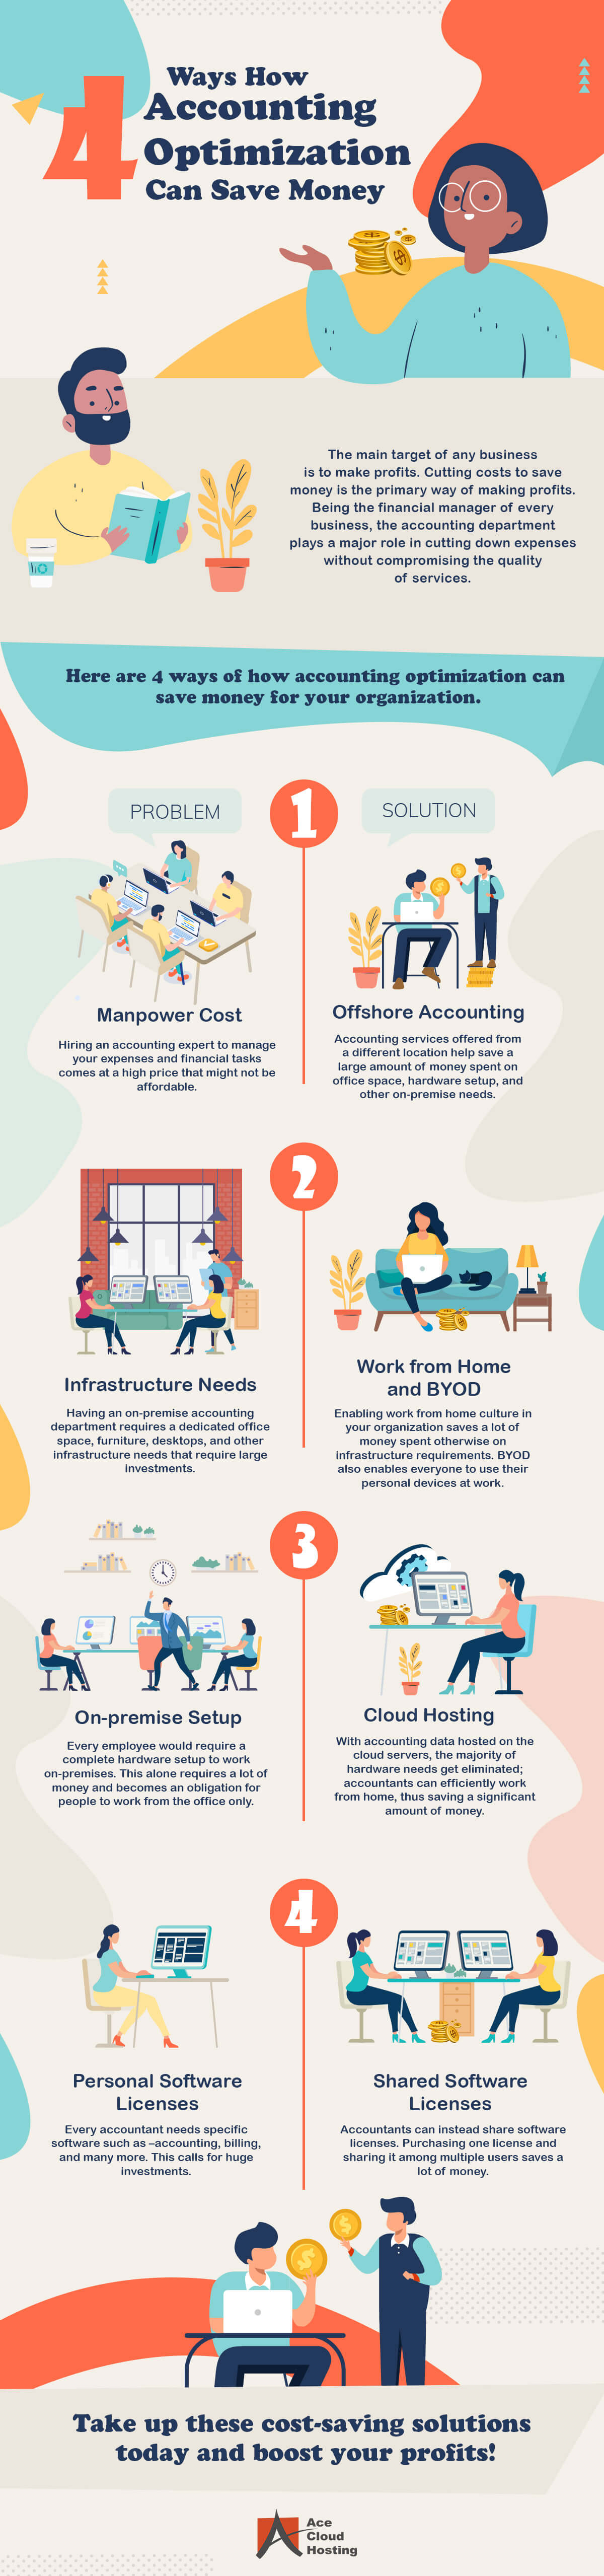 4 Ways How Accounting Optimization Can Save Money [Infographic]